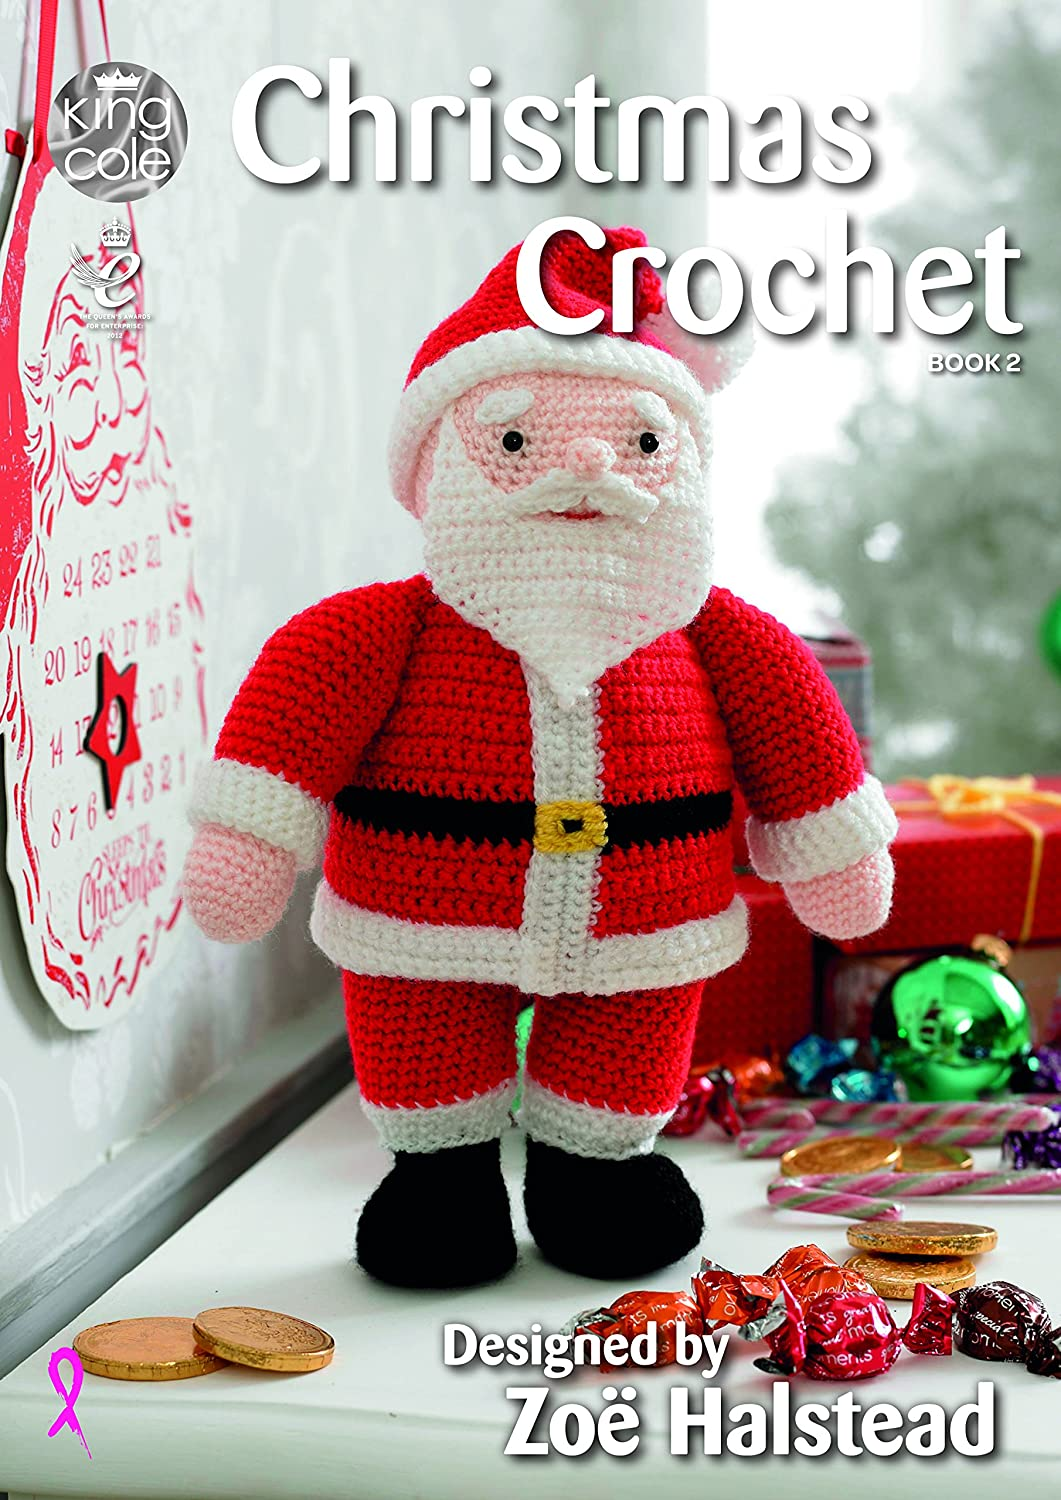 amazoncom king cole christmas crochet book 2 amigurumi toys table runner tree skirt garland stocking more home kitchen - Books About Santa Claus 2